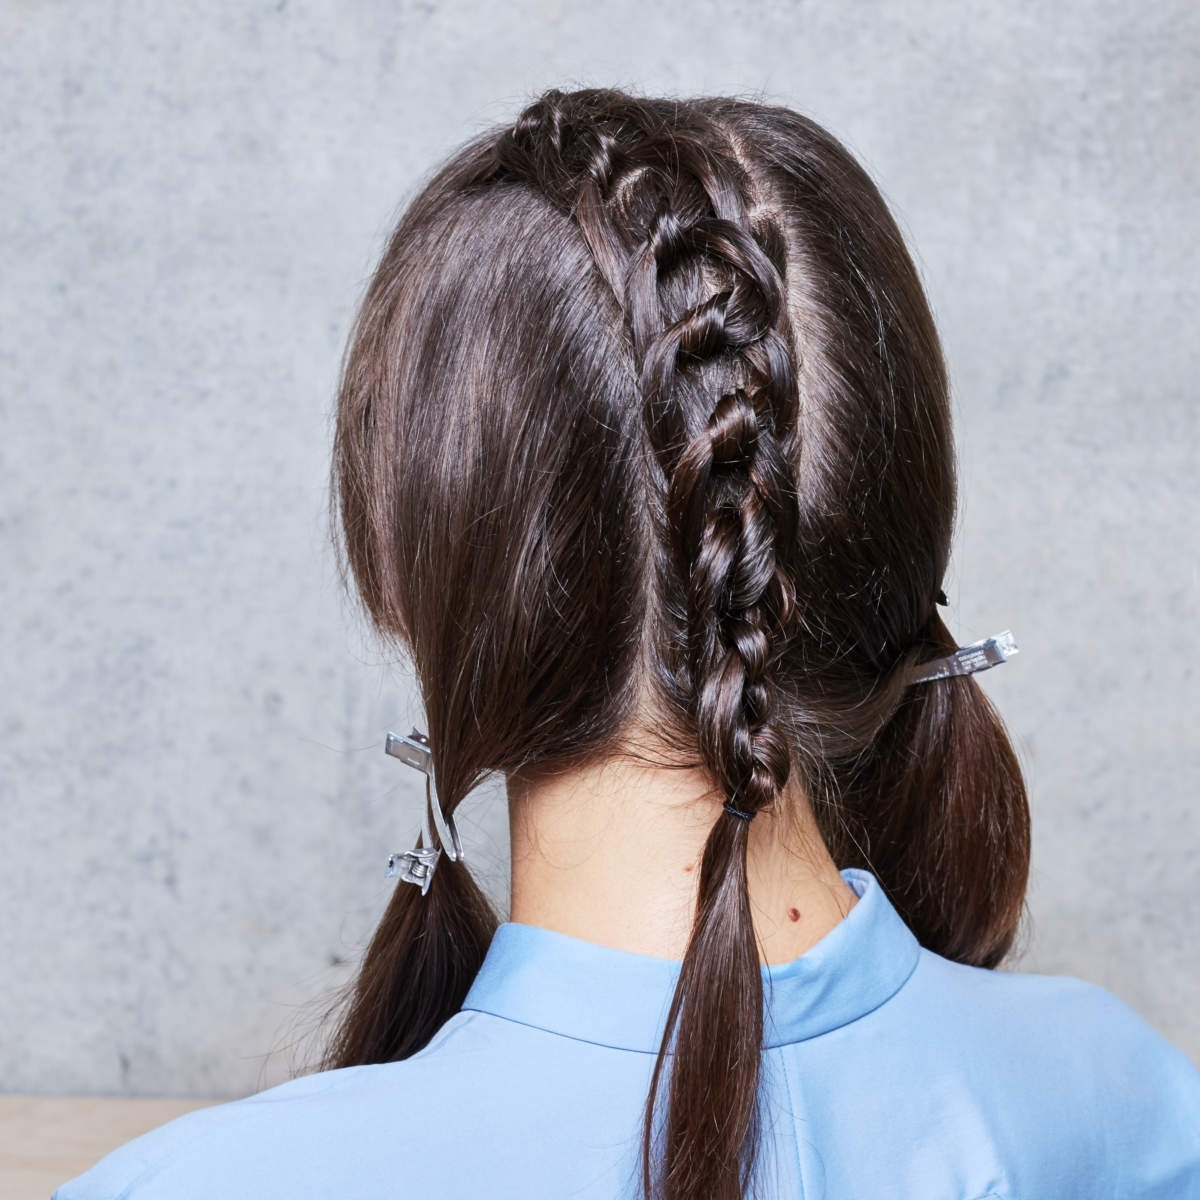 Current Macrame Braid Hairstyles In Pont Smith Challenges Classic Party Season Hair With 'macramé' Style (View 8 of 20)